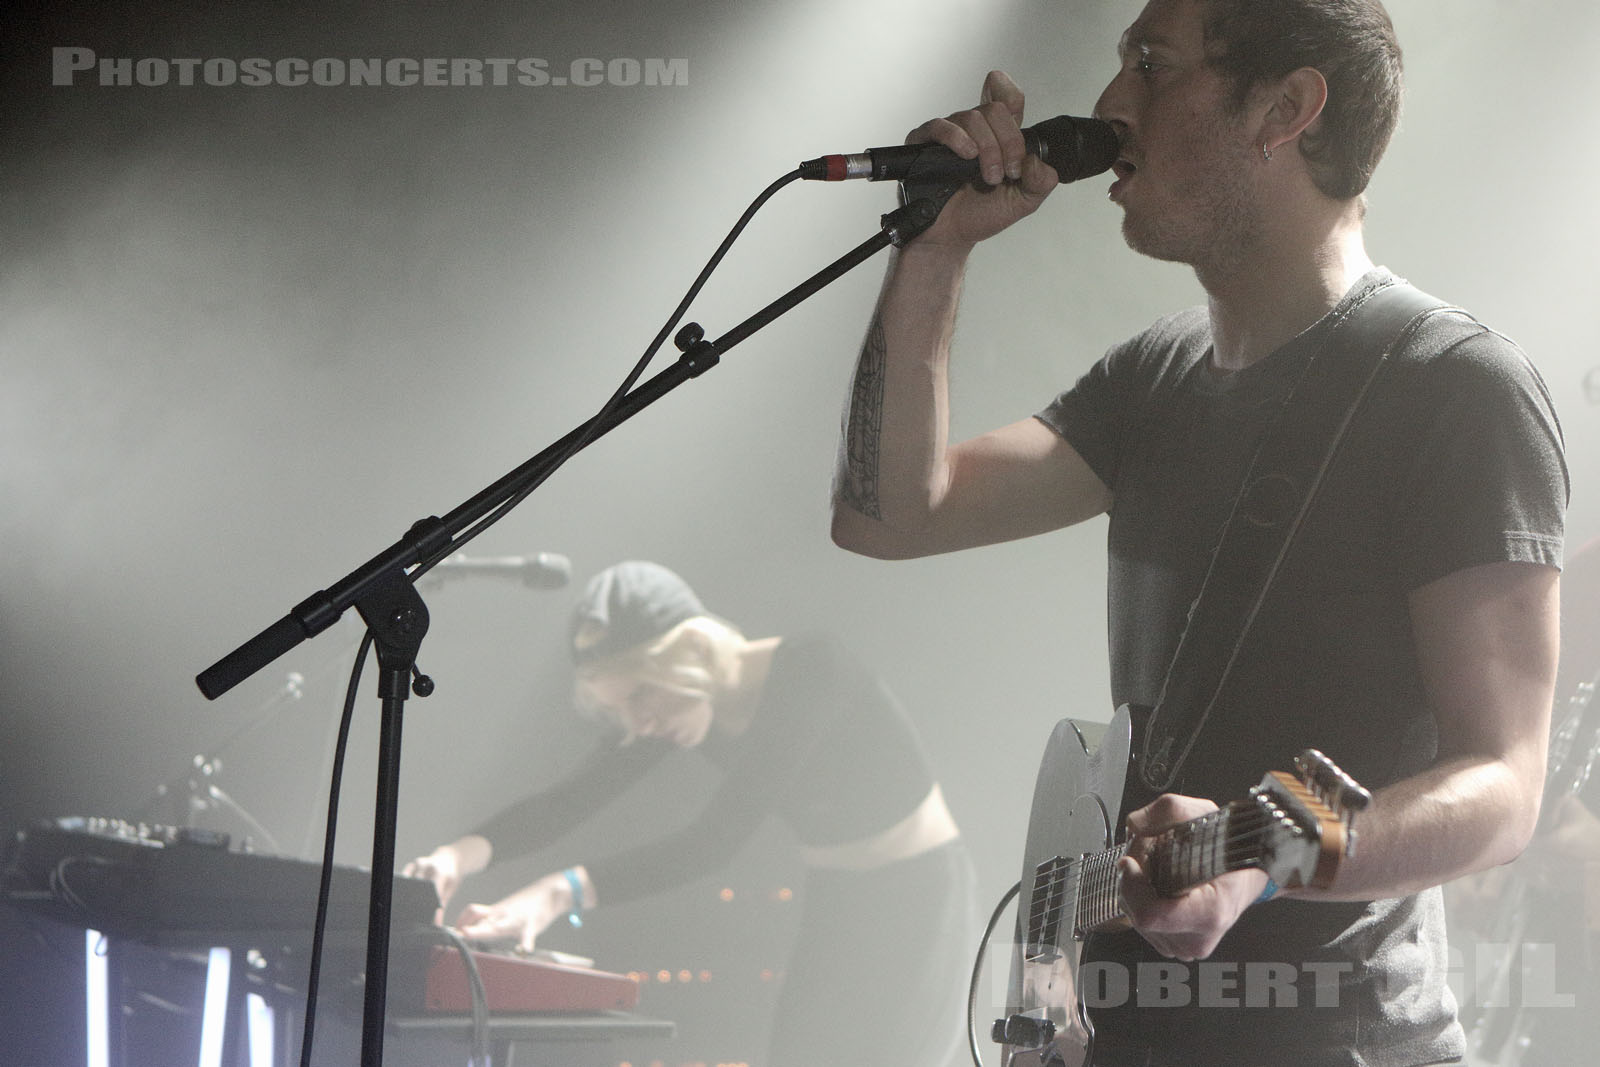 GRAND BLANC - 2016-03-15 - PARIS - La Maroquinerie